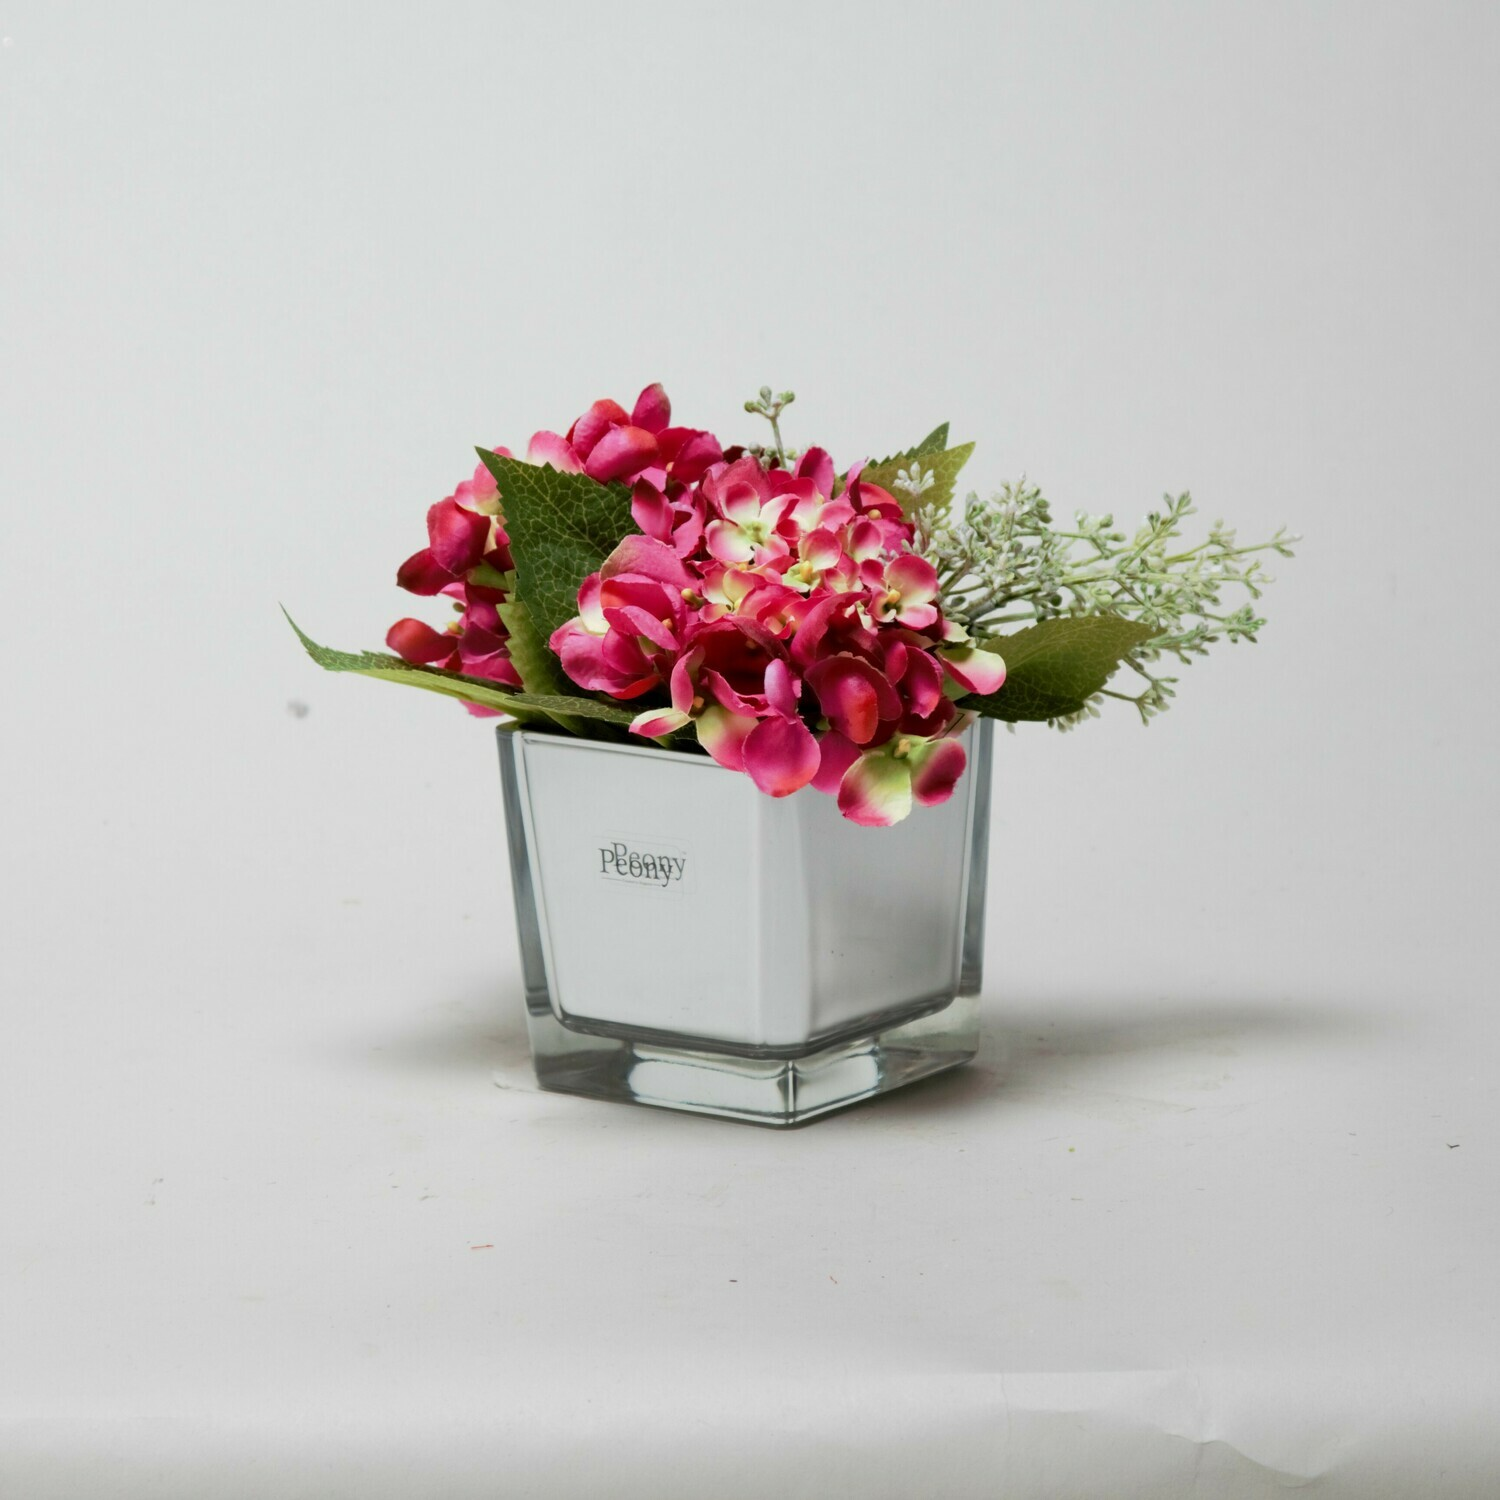 Fuchsia Hydrangea and Eucalyptus seed in a mirror cube